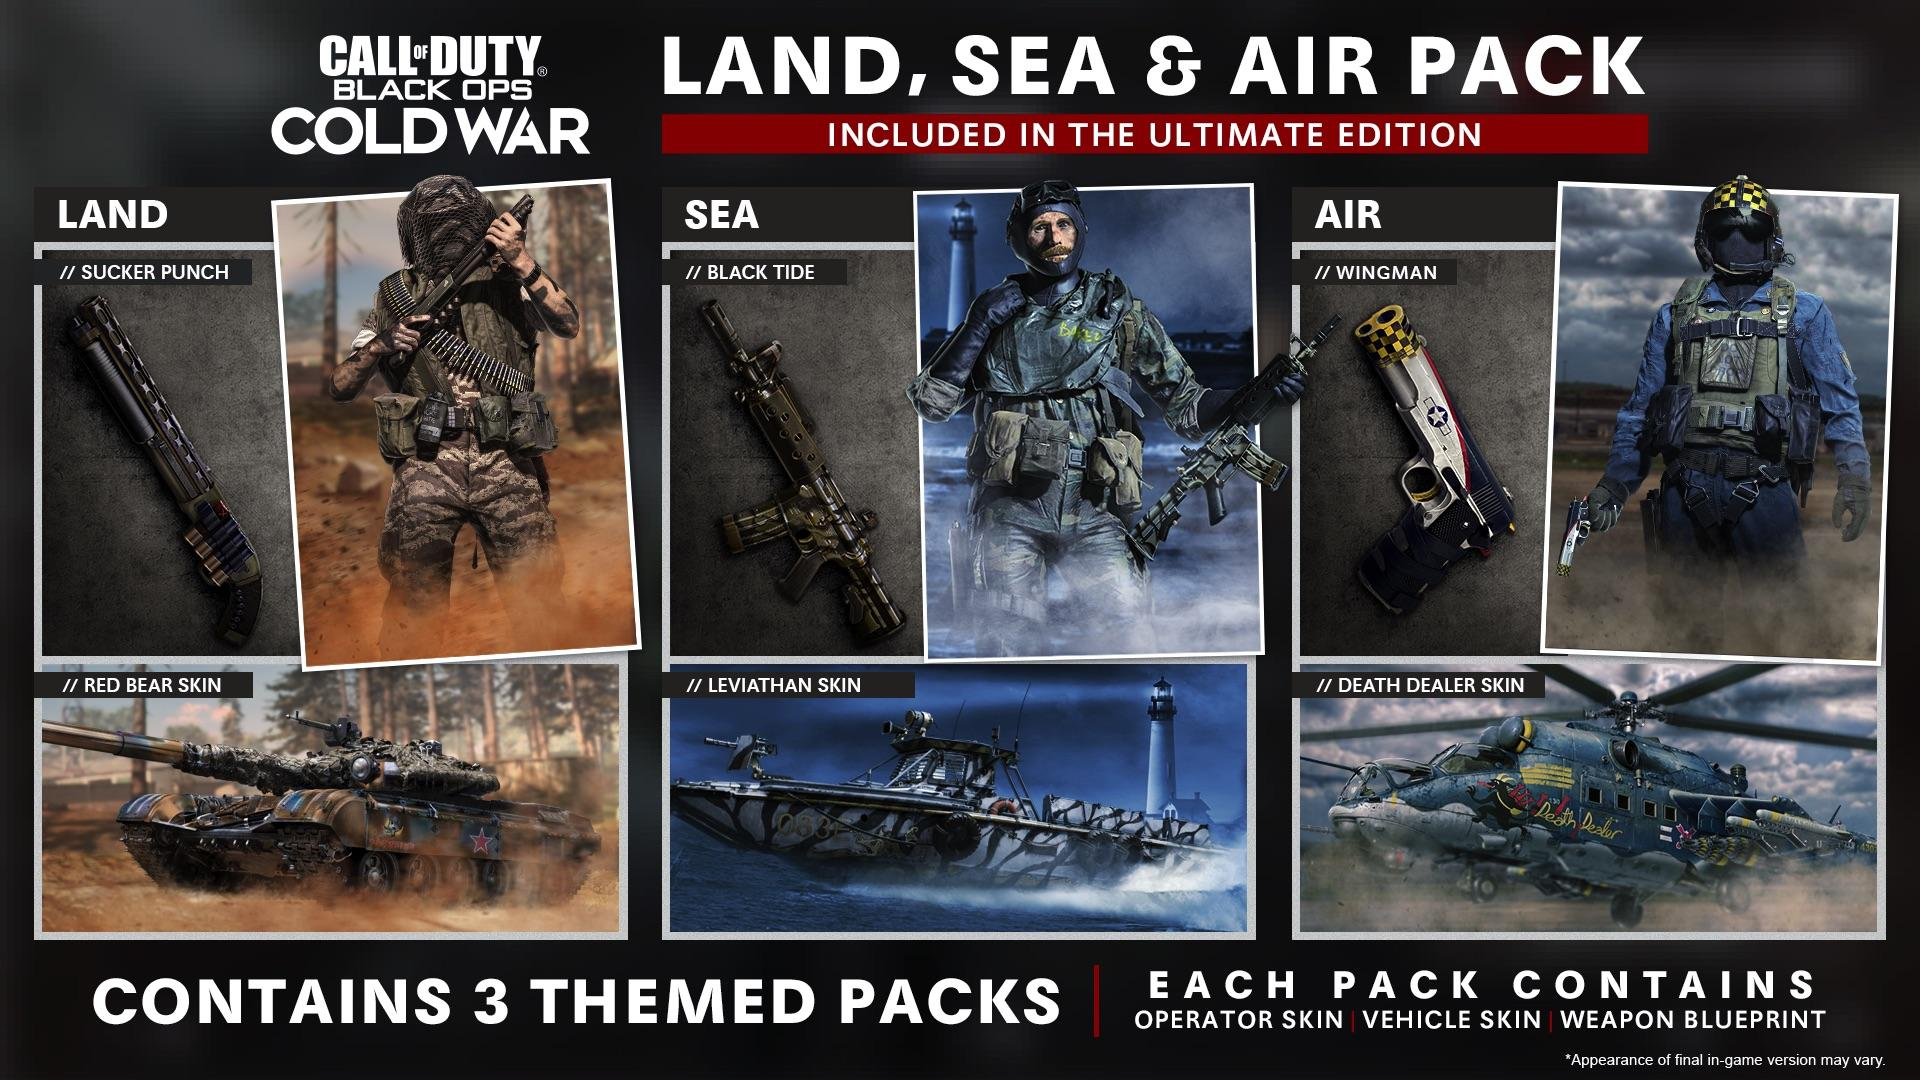 Call Of Duty Black Ops Cold War Revealed For November Launch With 70 Cross Gen Bundle Playstation 4 Playstation 3 News At Playstationtrophies Org